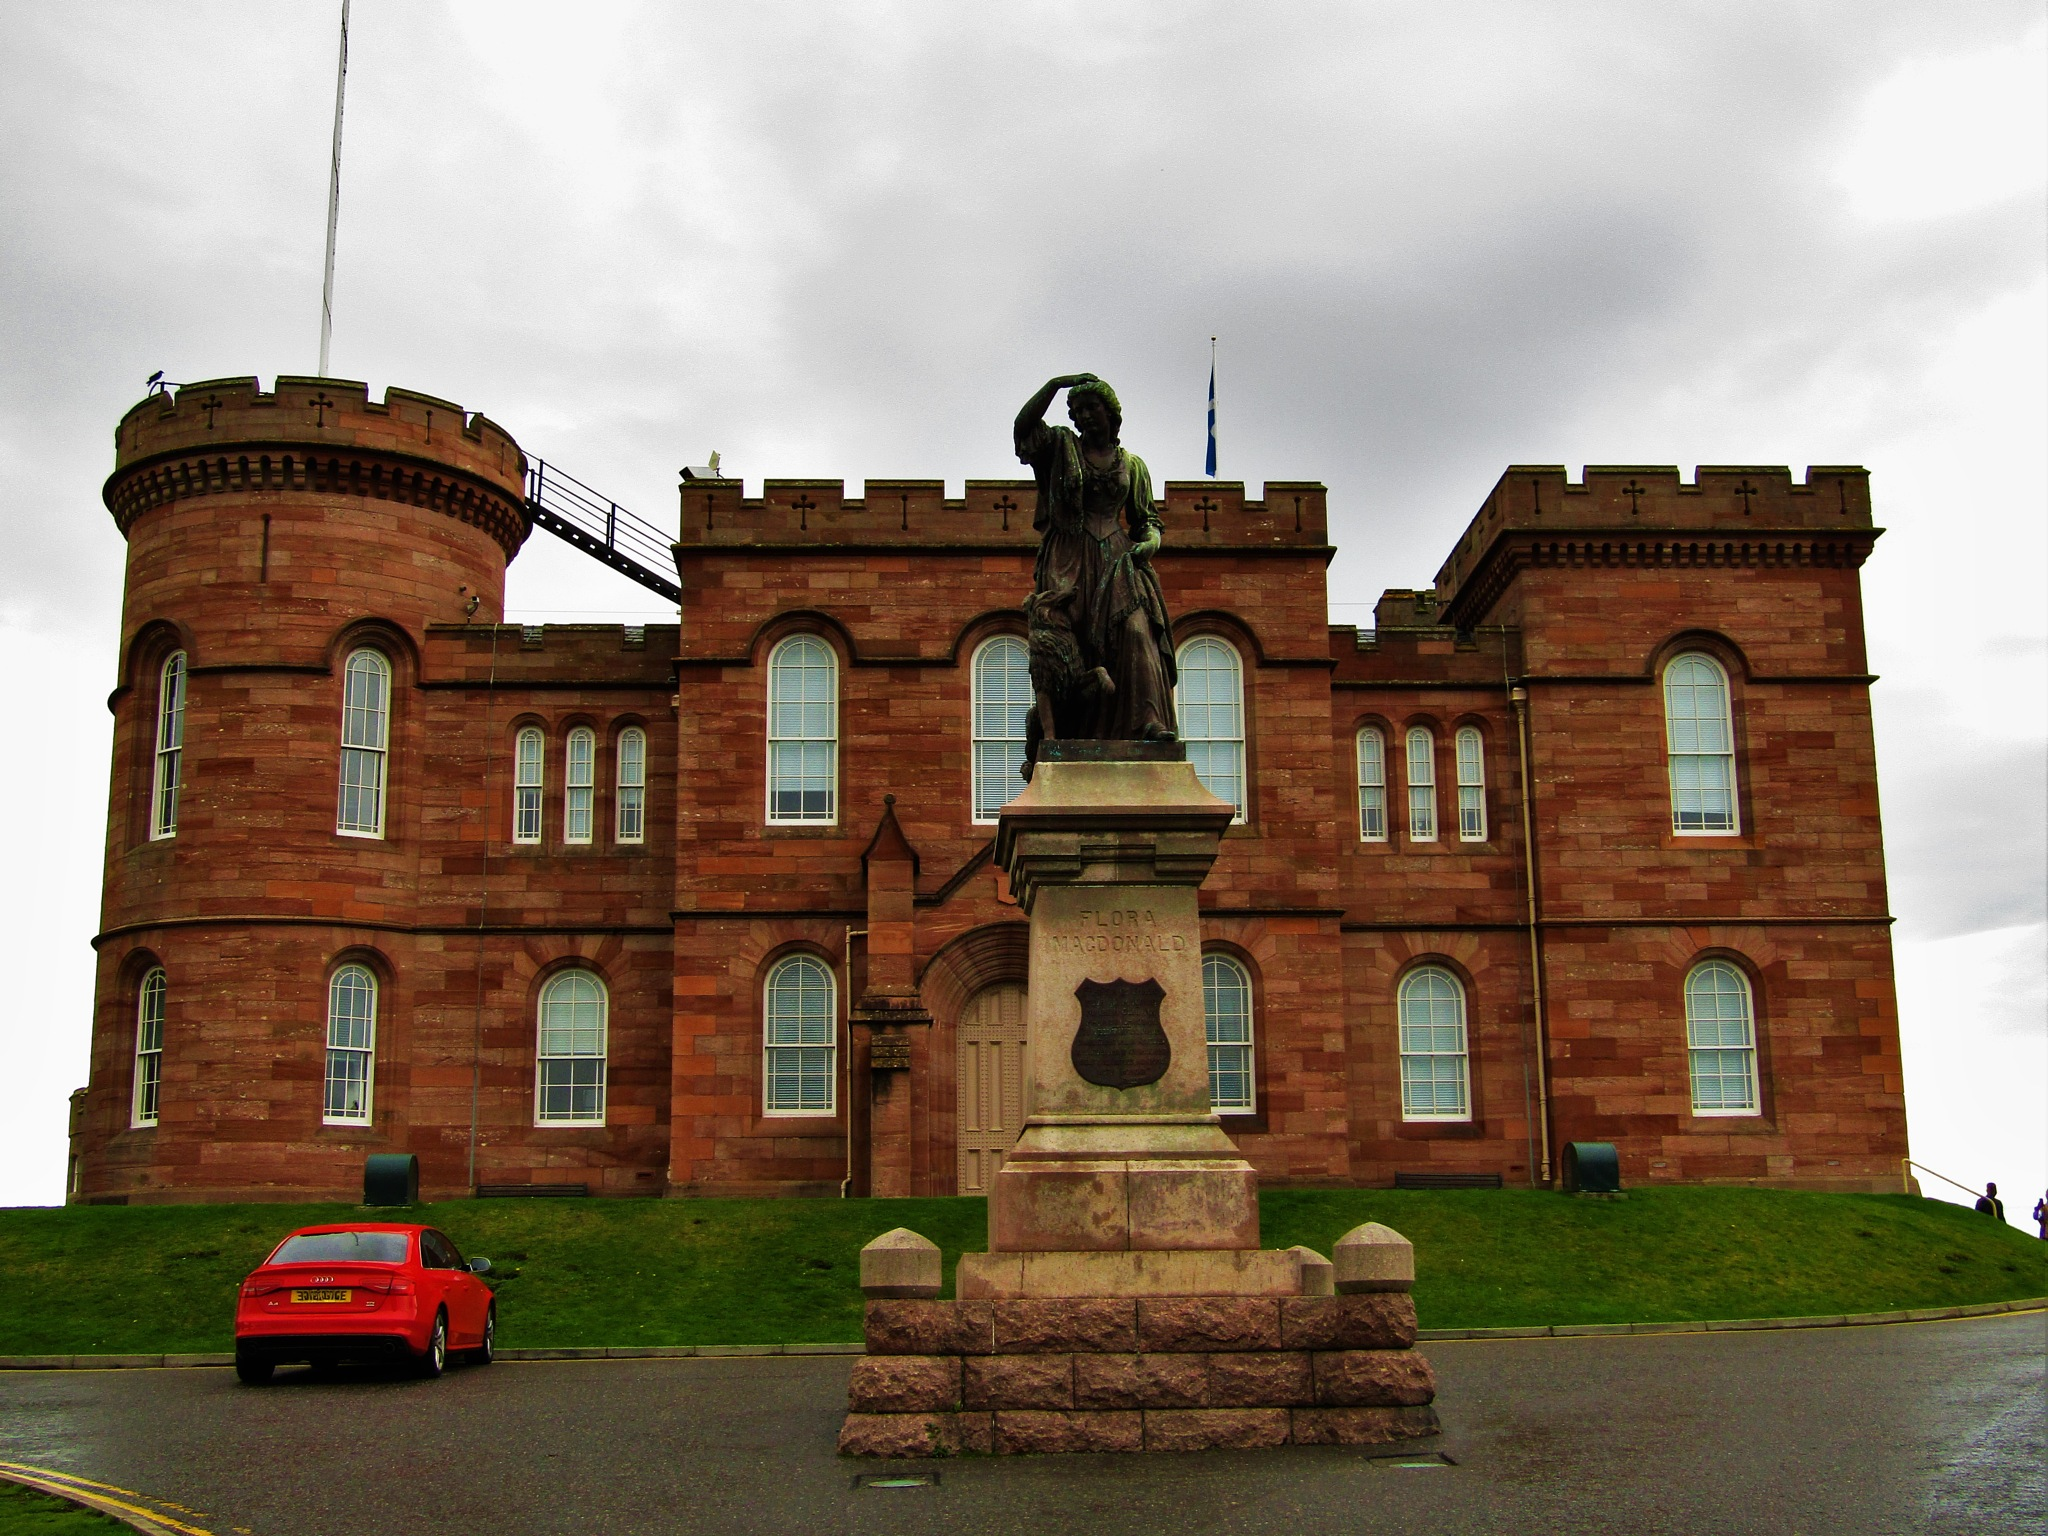 Inverness Castle by dpasika